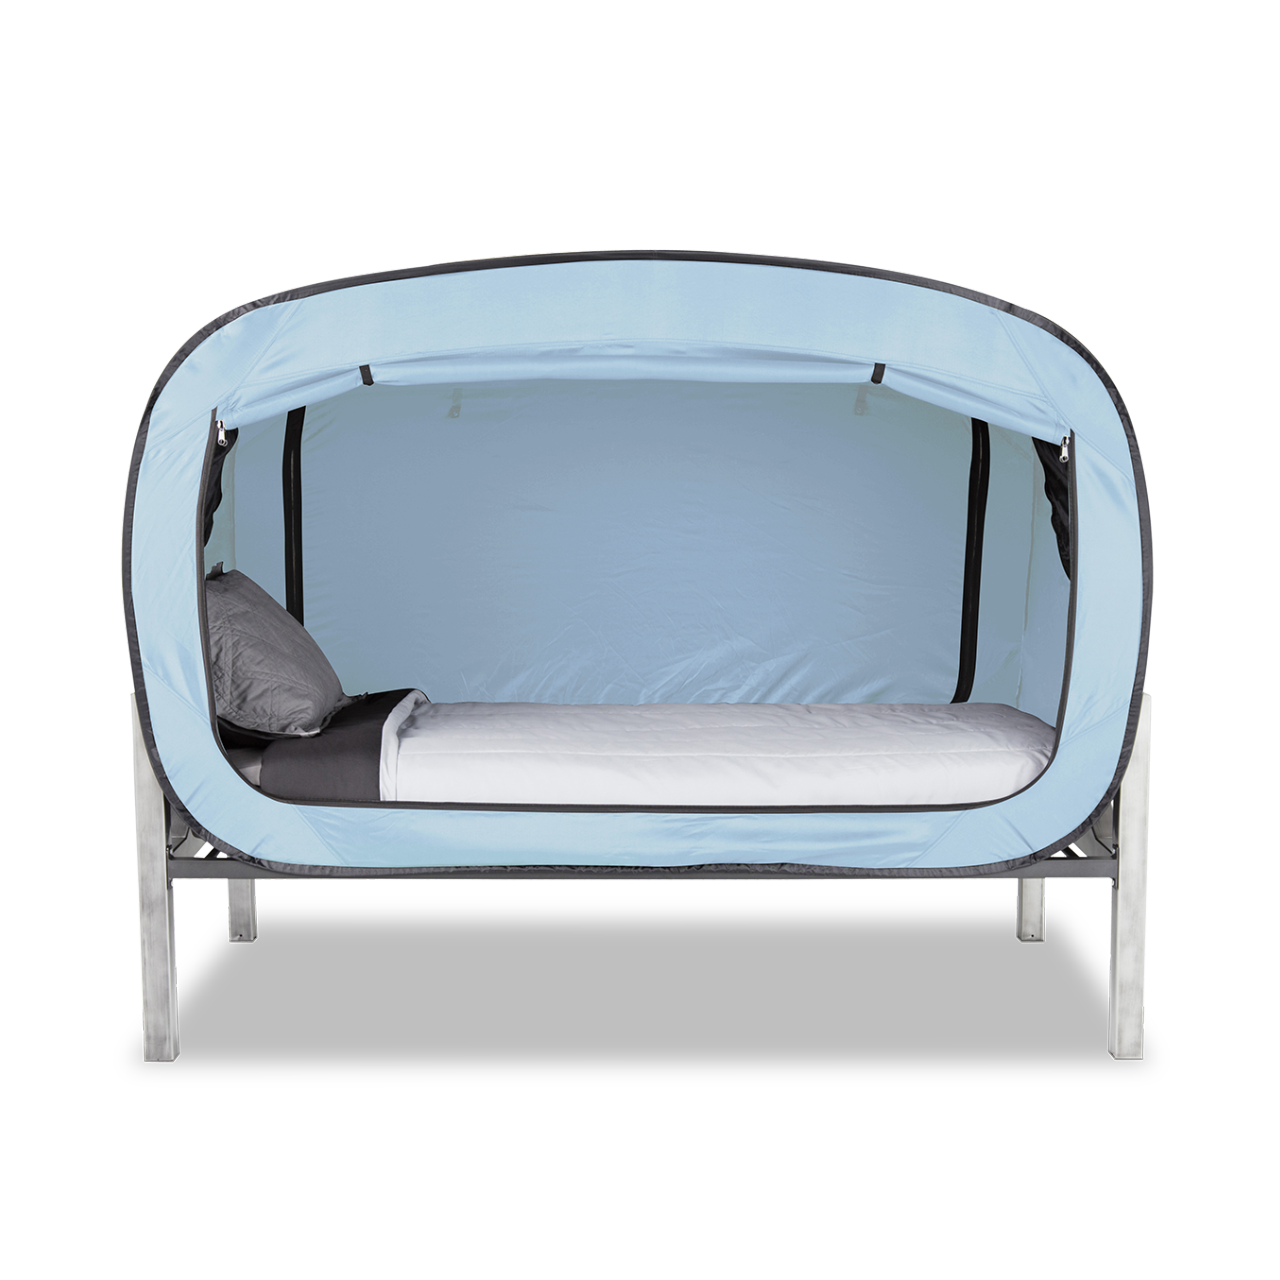 I *love* this idea for creating a sleep cocoon! Bed tent